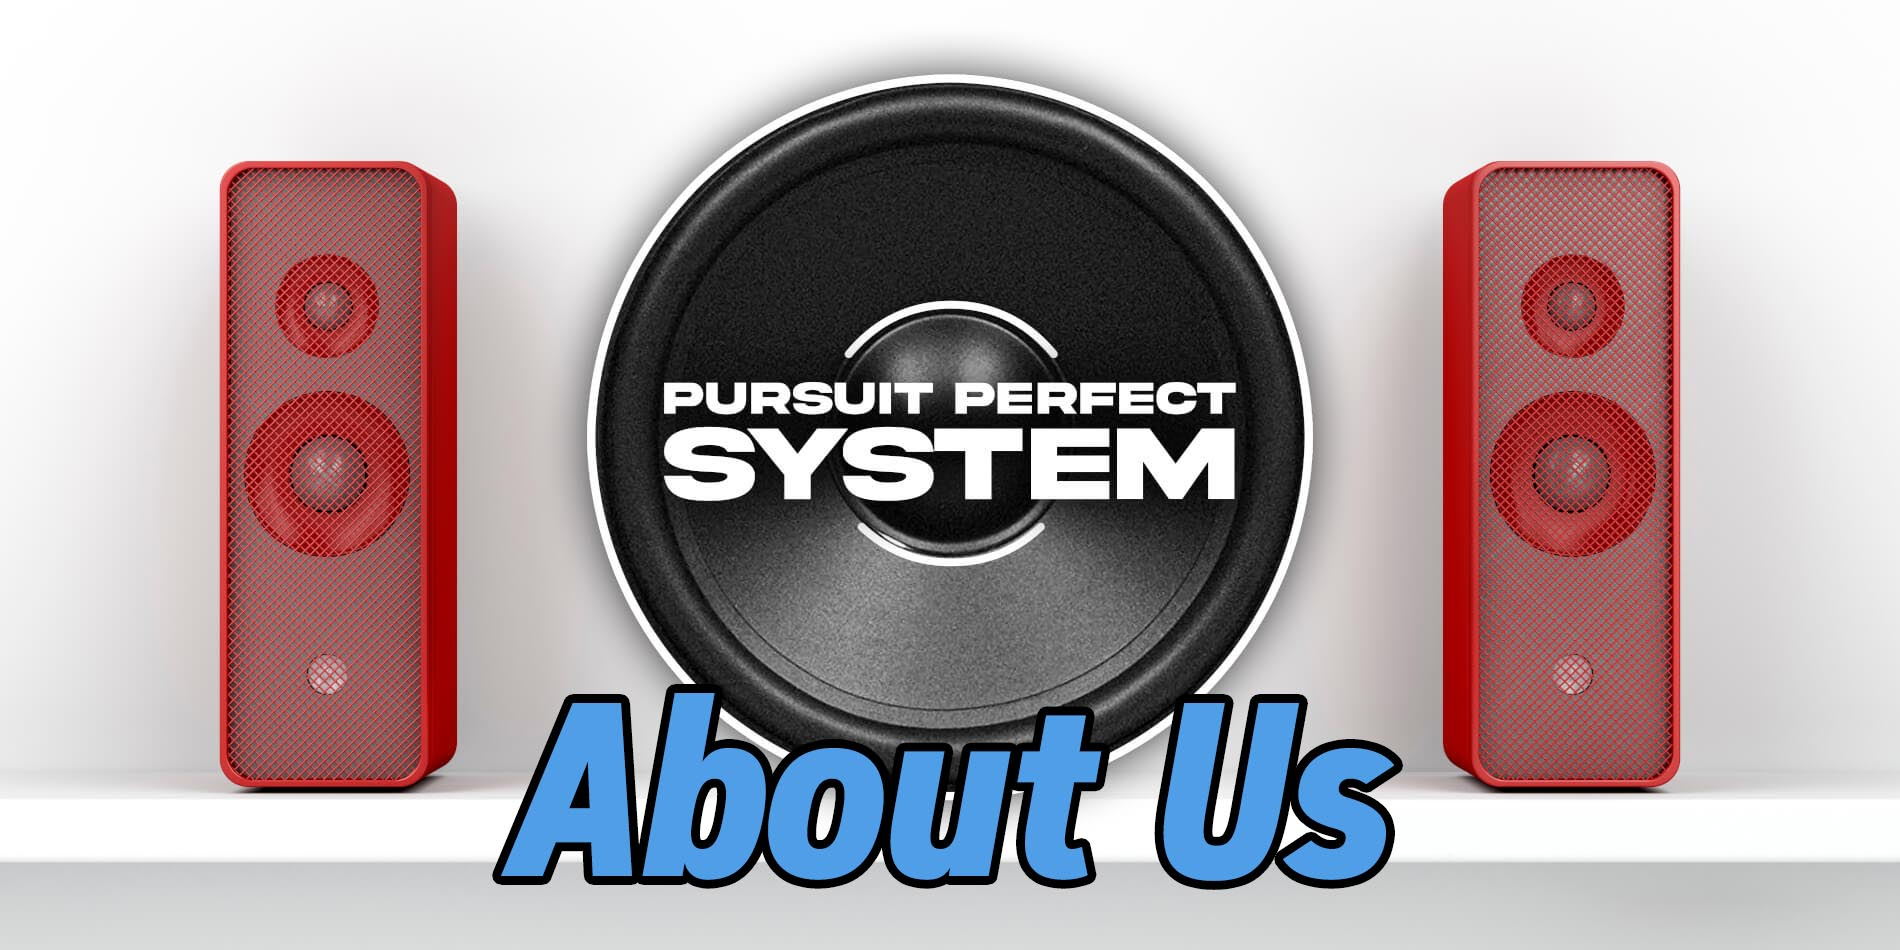 Pursuit Perfect System about us